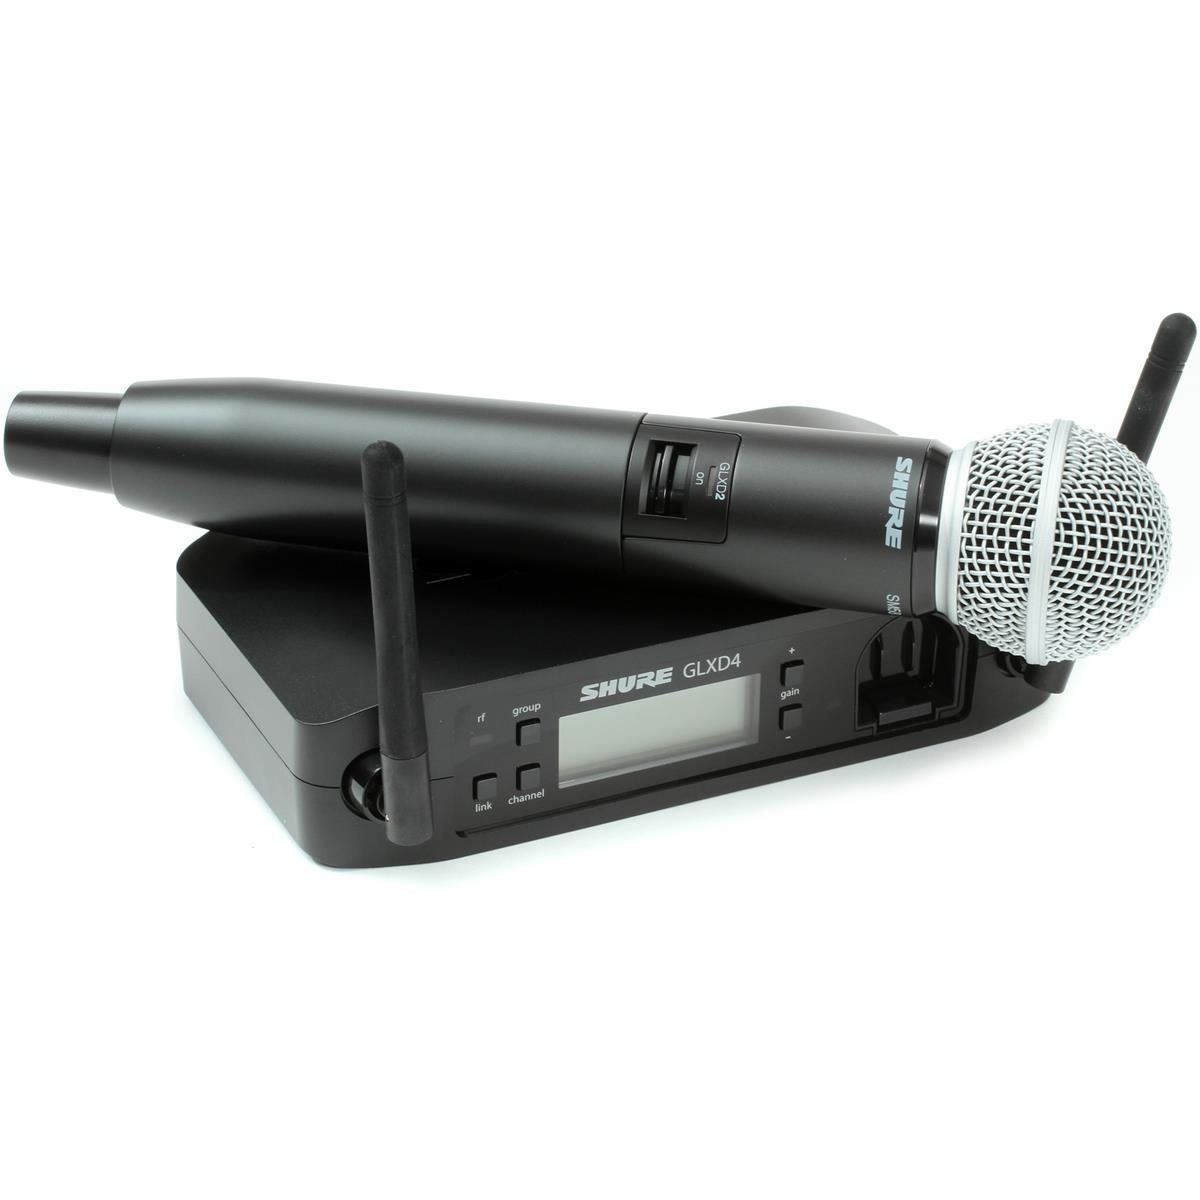 SHURE GLXD24/BETA 58 RADIO MANO GELATO DIGITALE